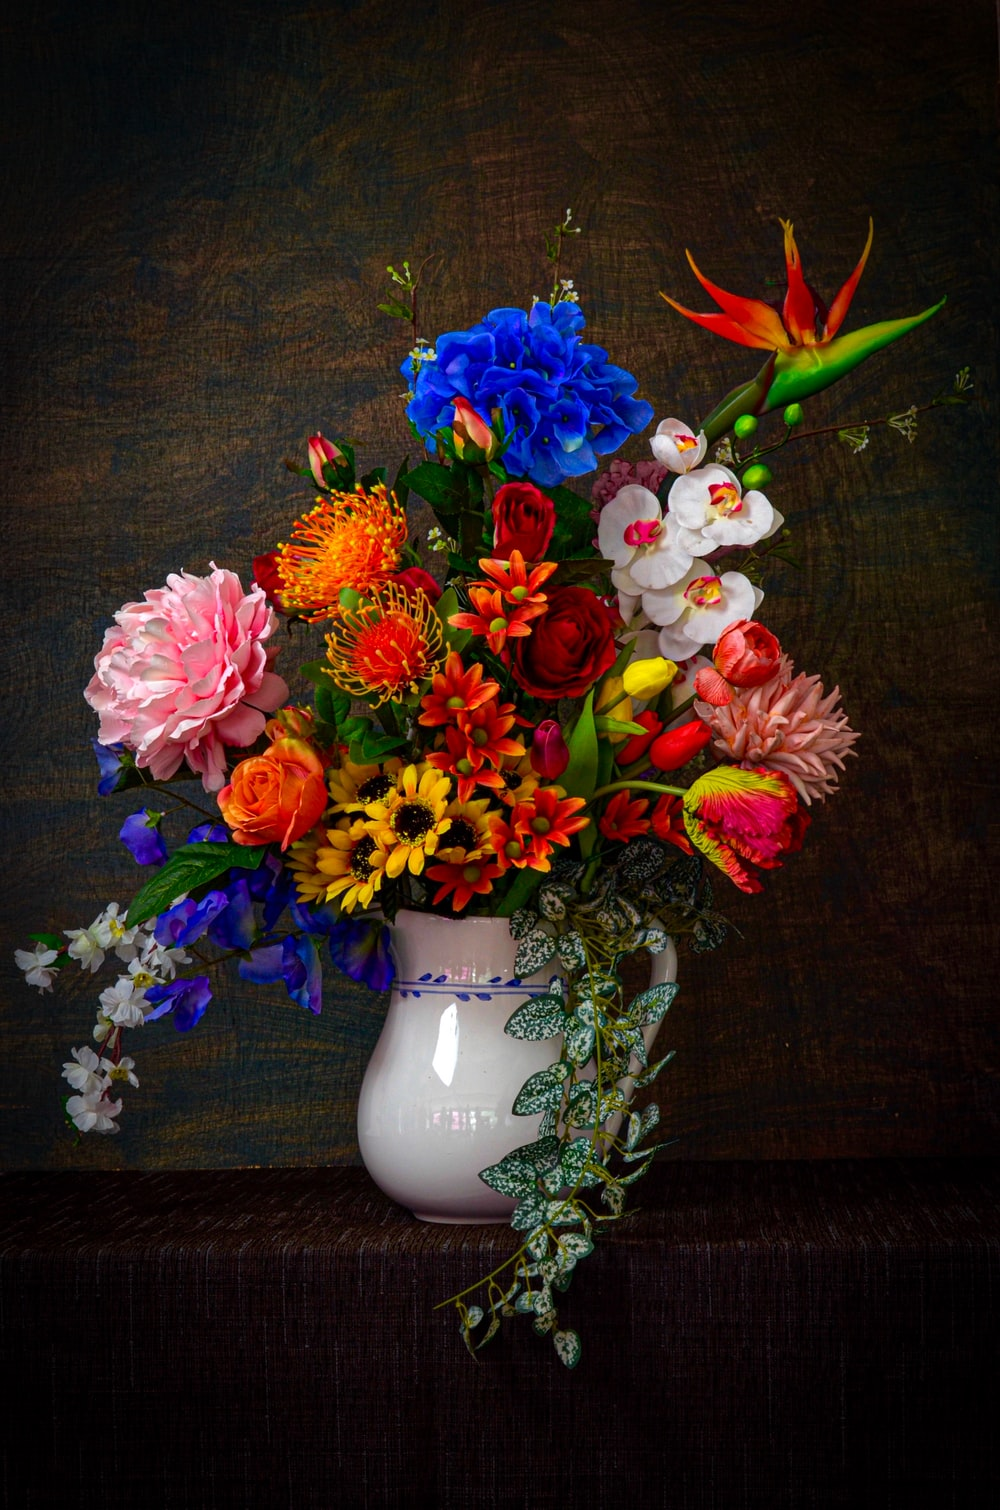 assorted flowers in white vase on brown surface